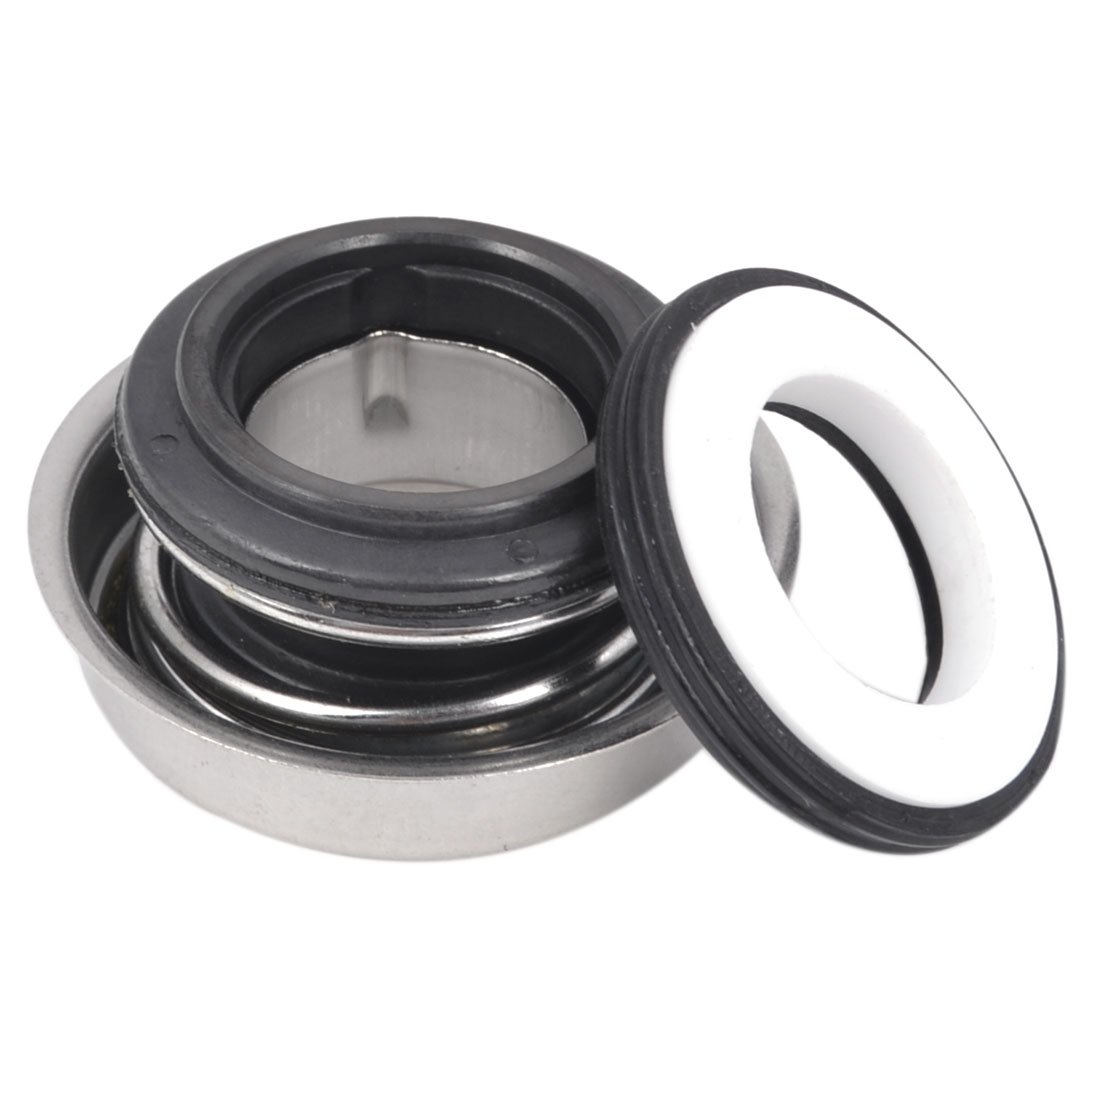 Home Water Pump 20mm Diameter Rubber Bellows Sealing Shaft Mechanical Seal